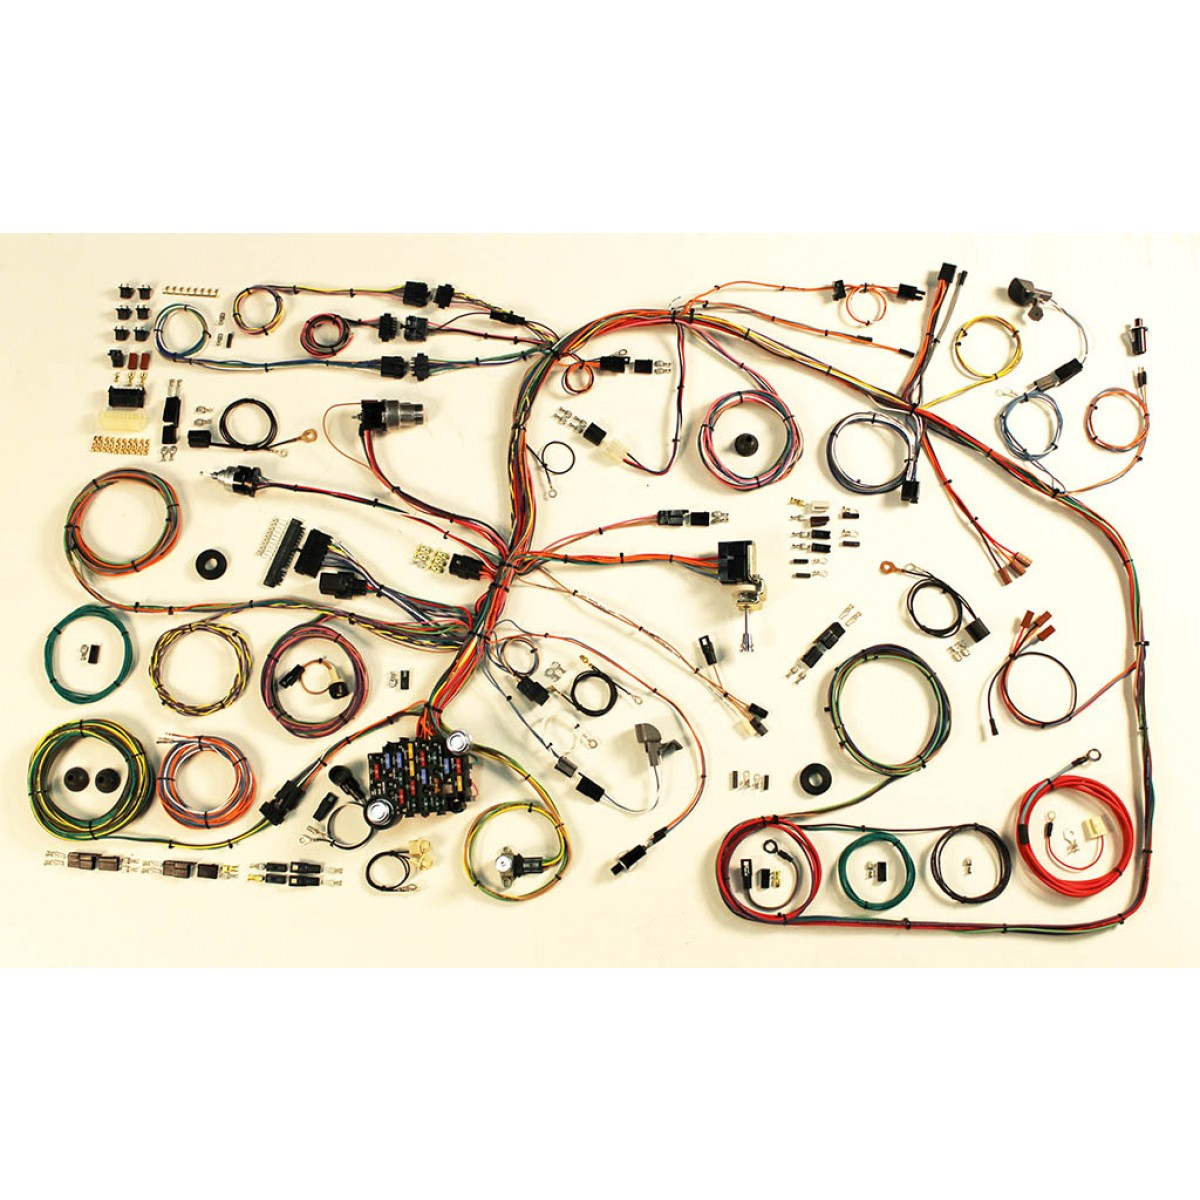 hight resolution of 1967 1972 ford f100 complete wiring harness kit 1967 1972 ford 1972 ford f100 alternator wiring harness 1972 ford f100 wiring harness